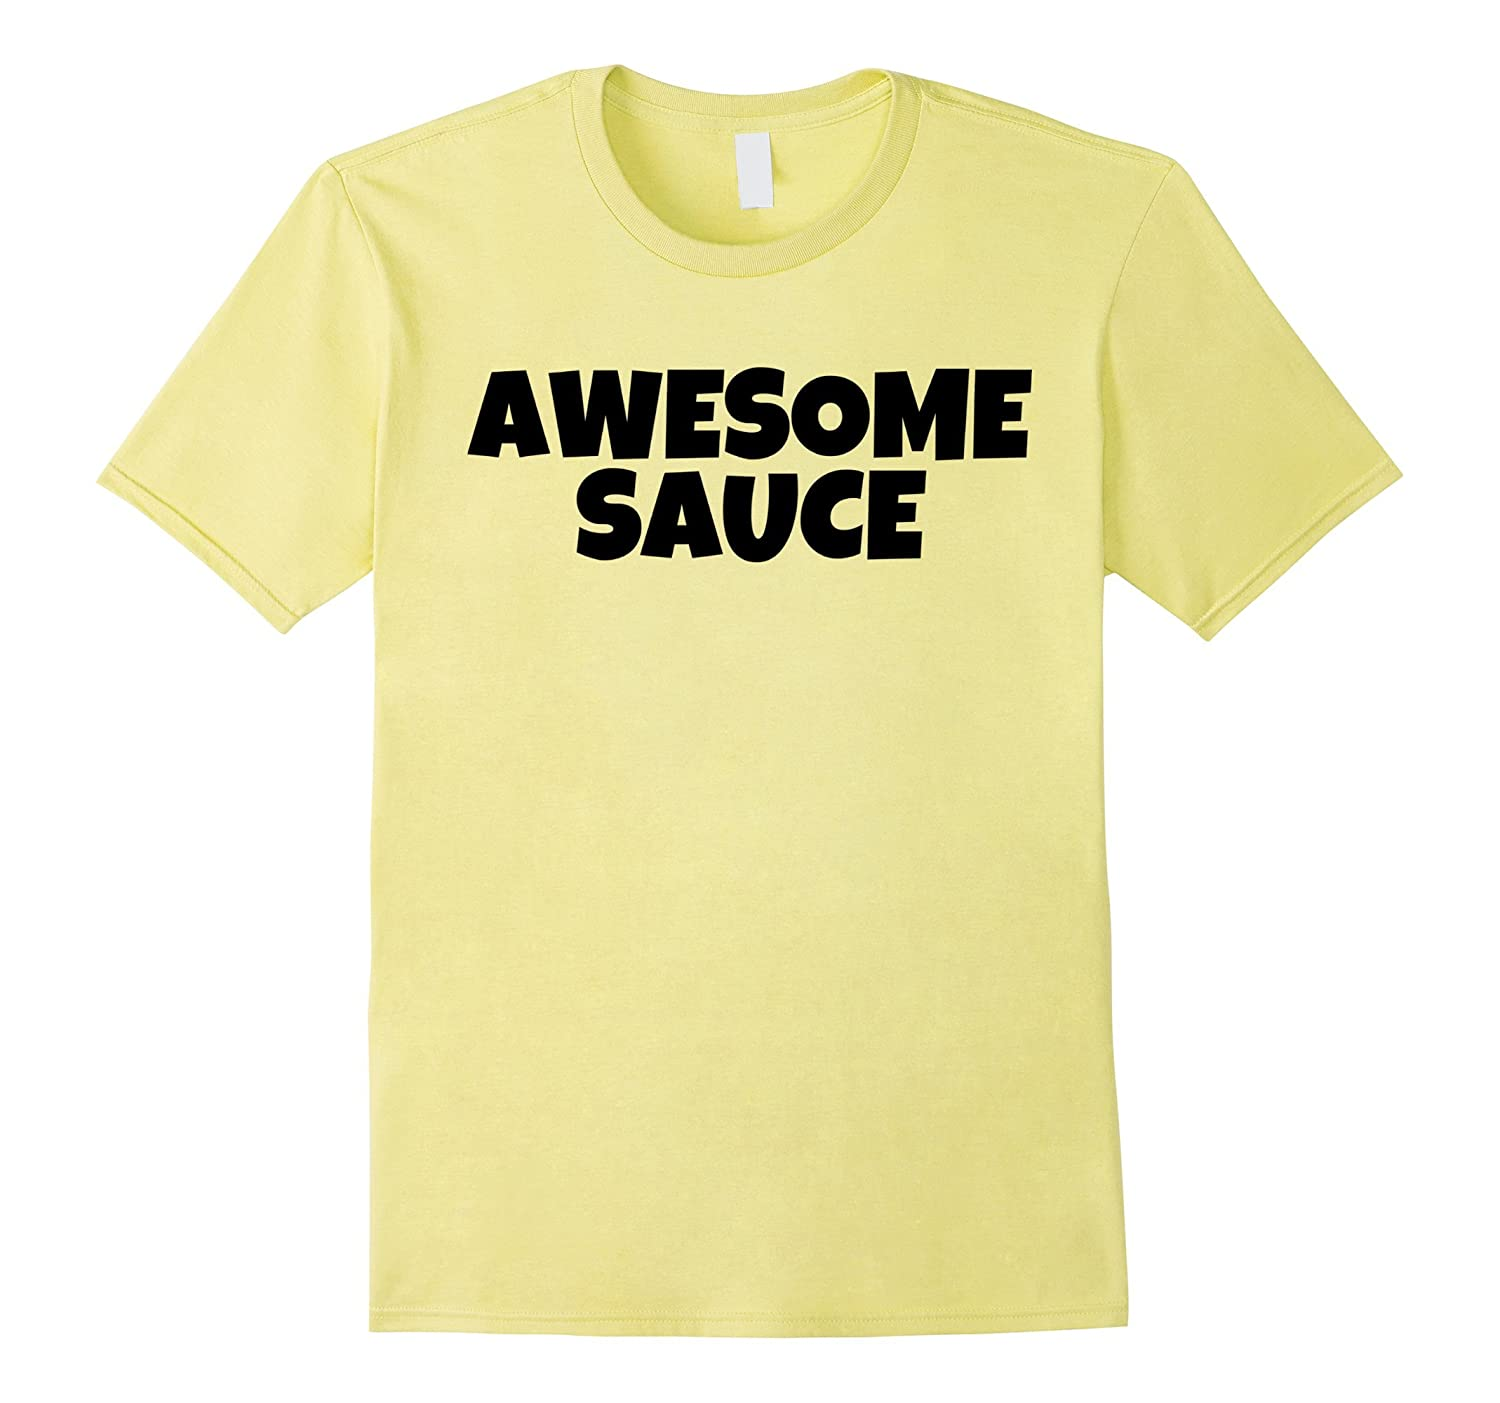 Awesome Sauce Tee Shirt Awesome Sauce Clothes Awesome Tees